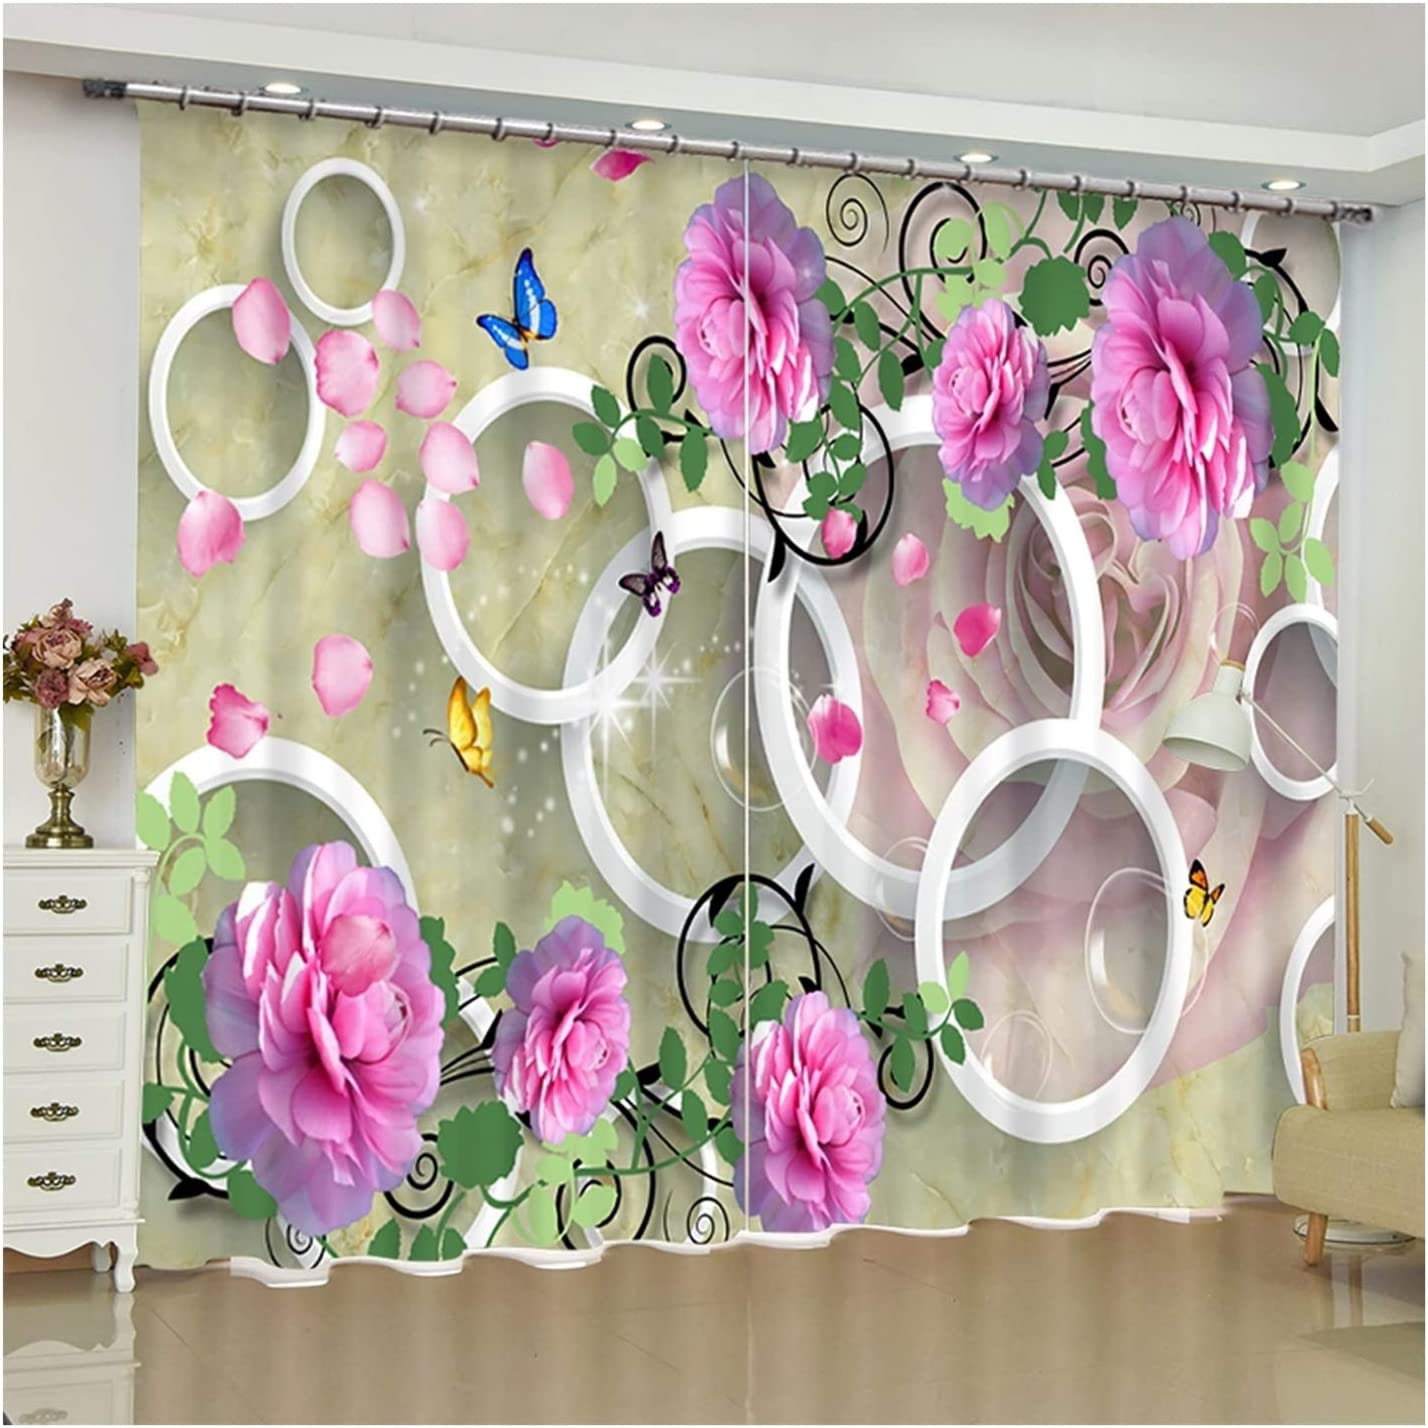 Daesar Drapes Curtains 4 years warranty for Living 2 P Max 53% OFF Room Bedroom